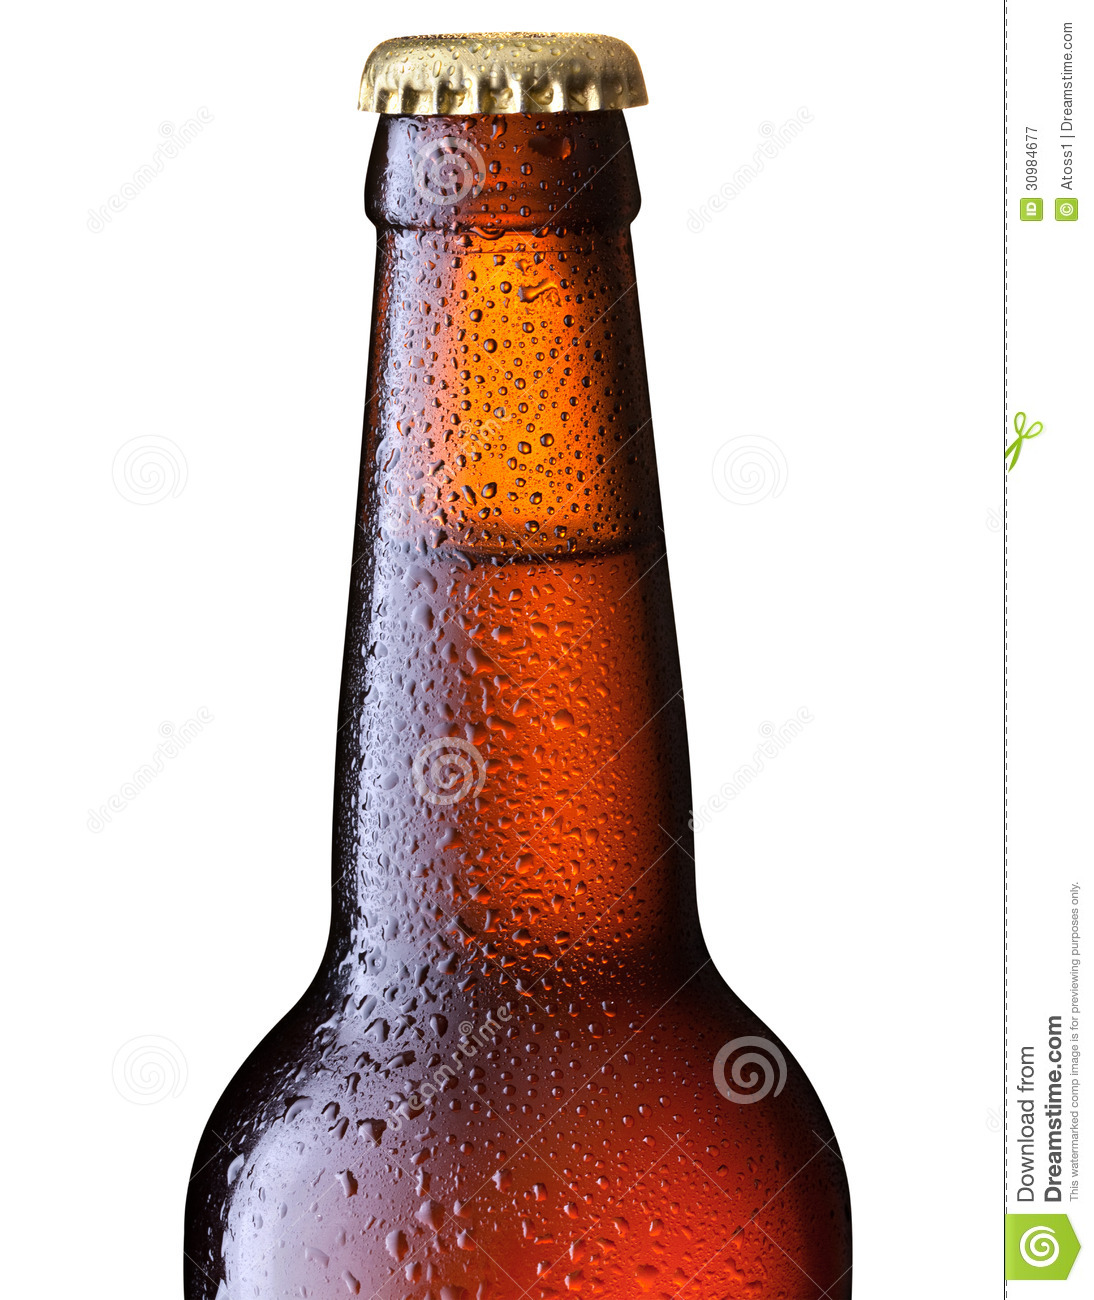 Brown beer bottle royalty free stock photography image 30984677